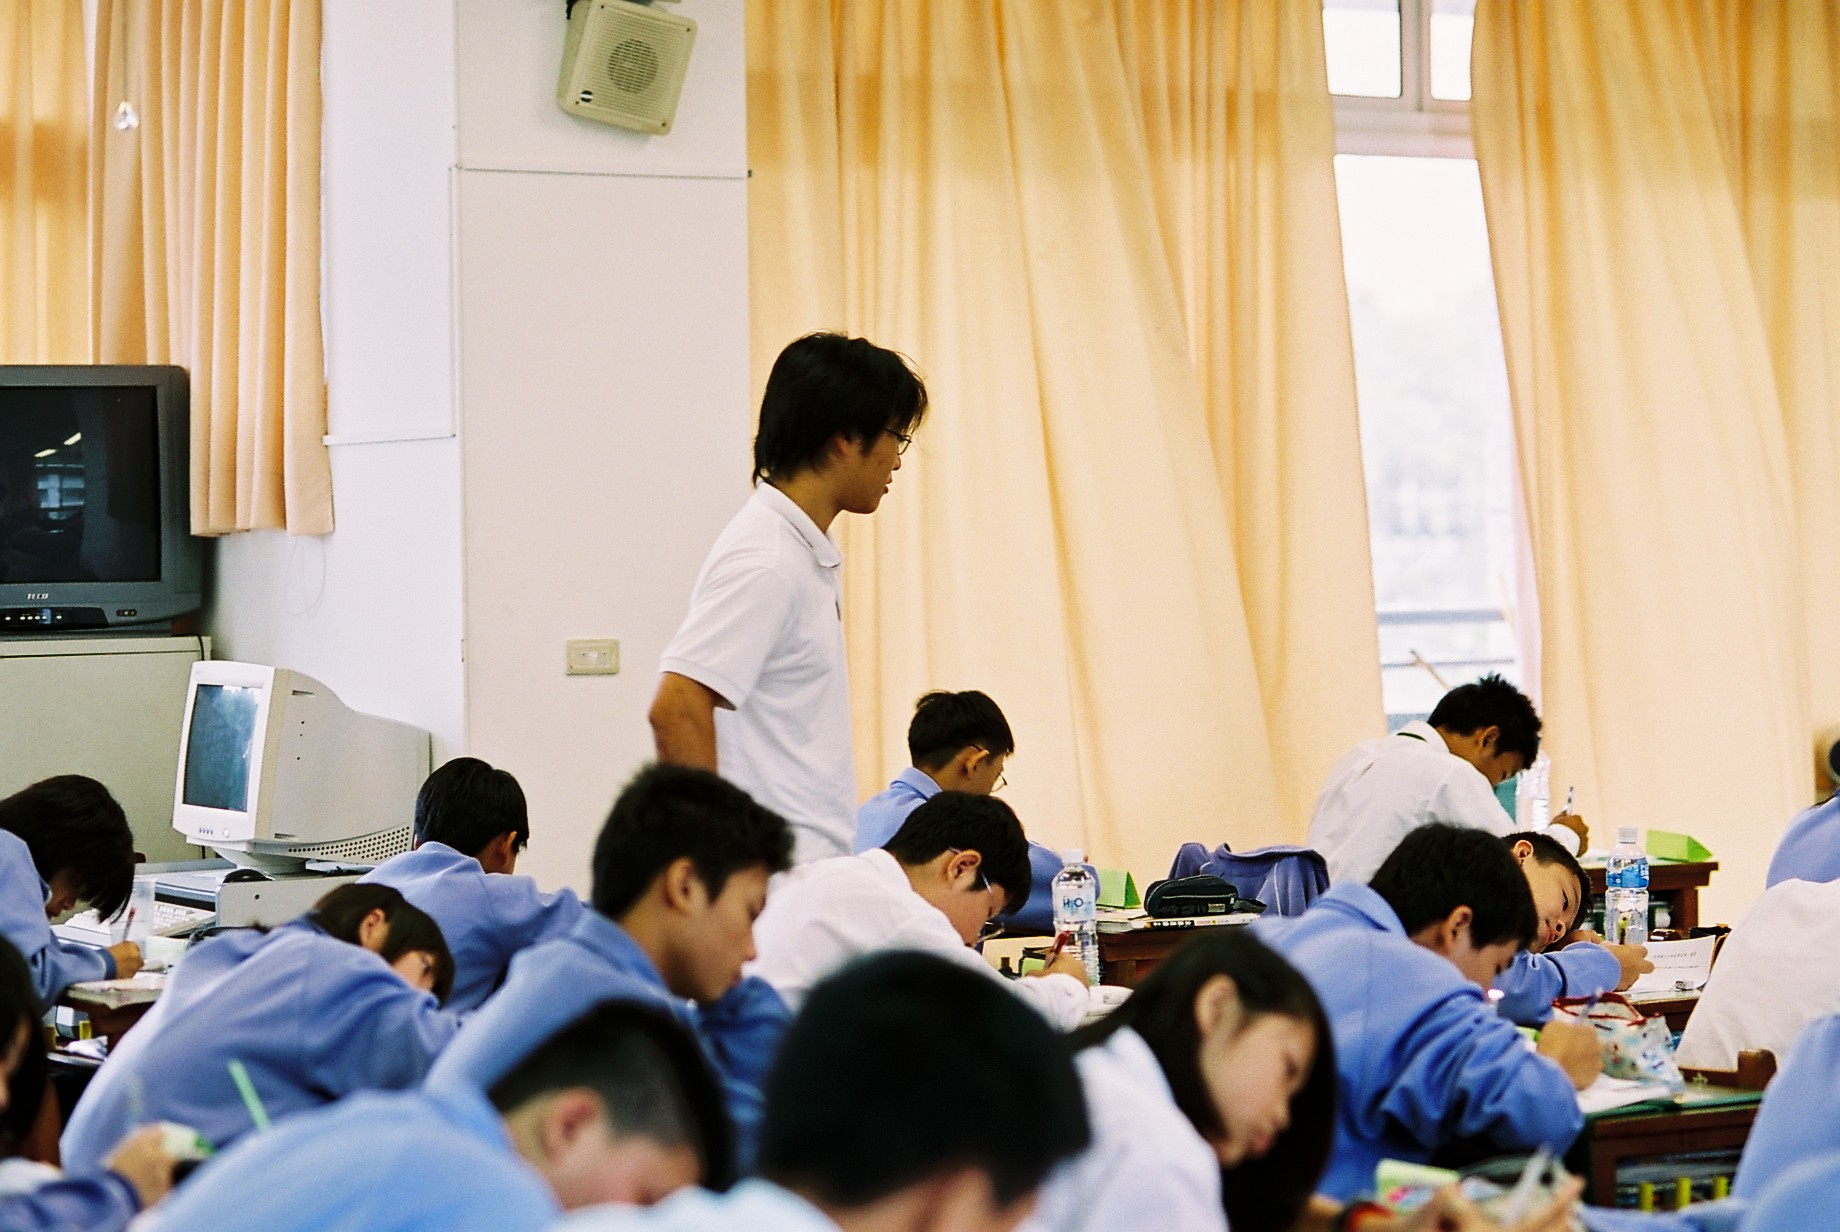 Does Taiwan's education systems offer value for money?